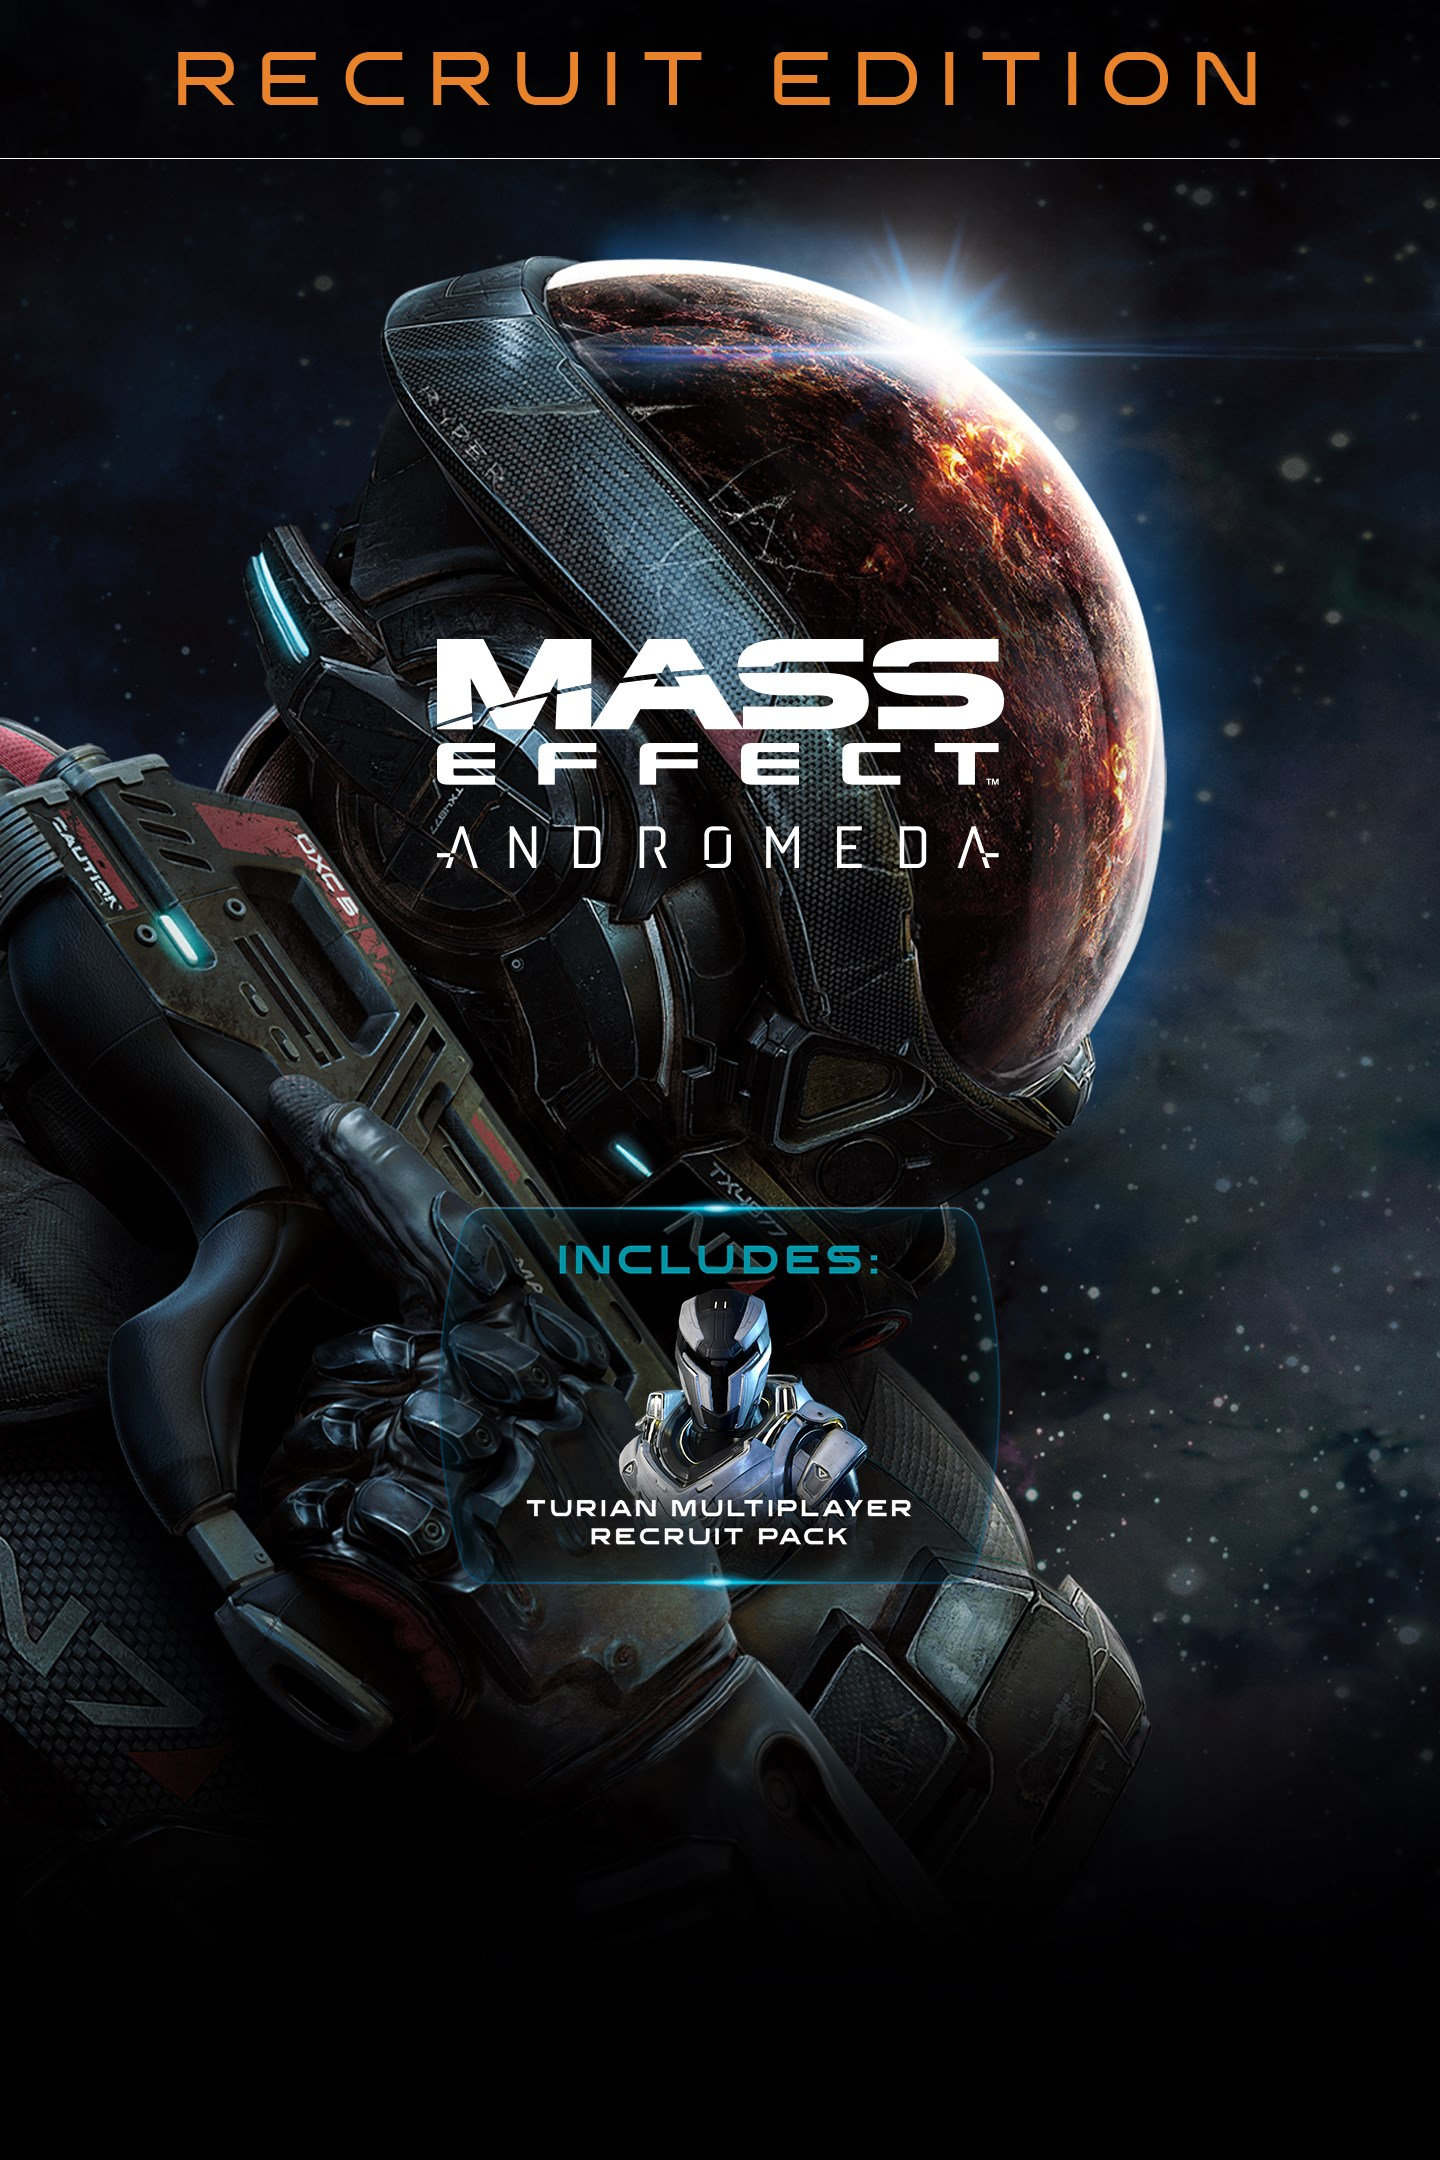 Mass Effect Andromeda Standard recruit Xbox One key 🔑